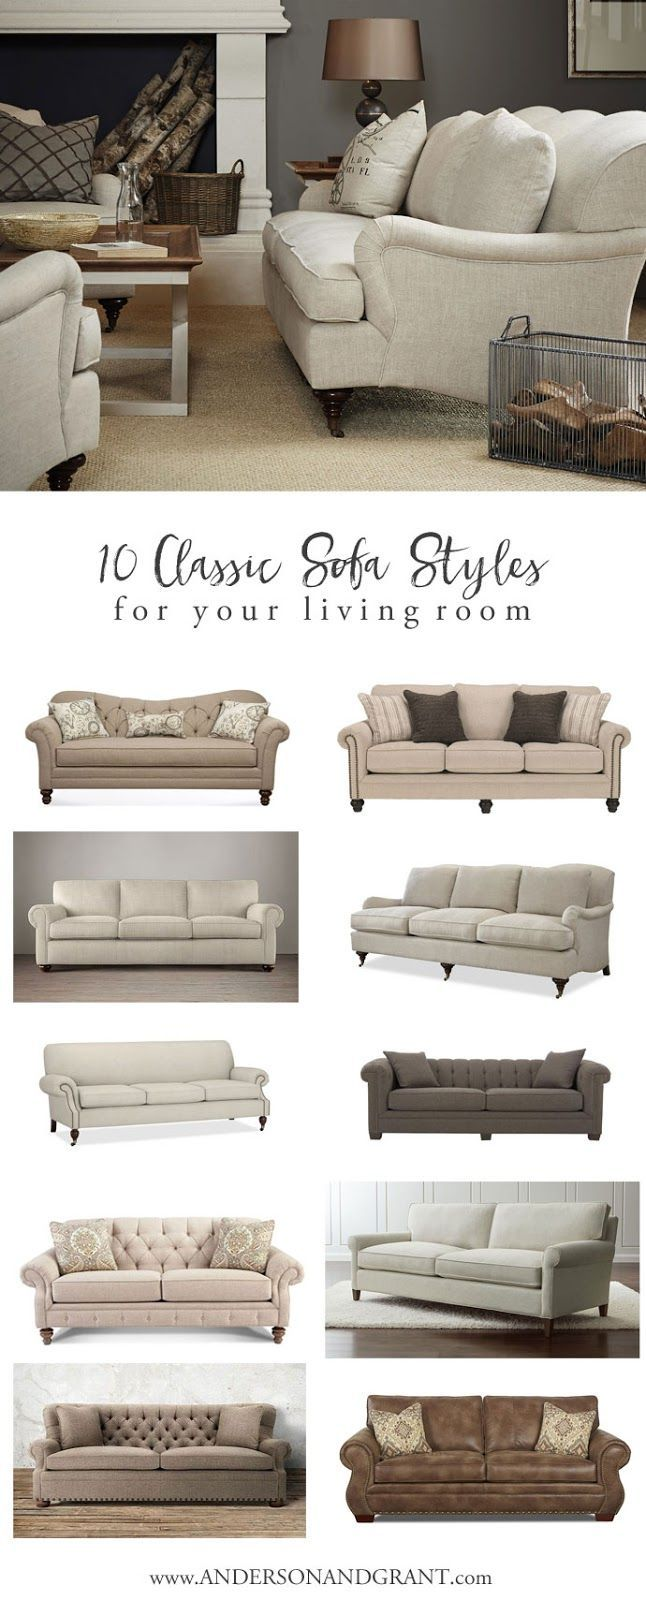 Best Ideas About Living Room Sofa On Pinterest Neutral Living - Sofa designs for living room